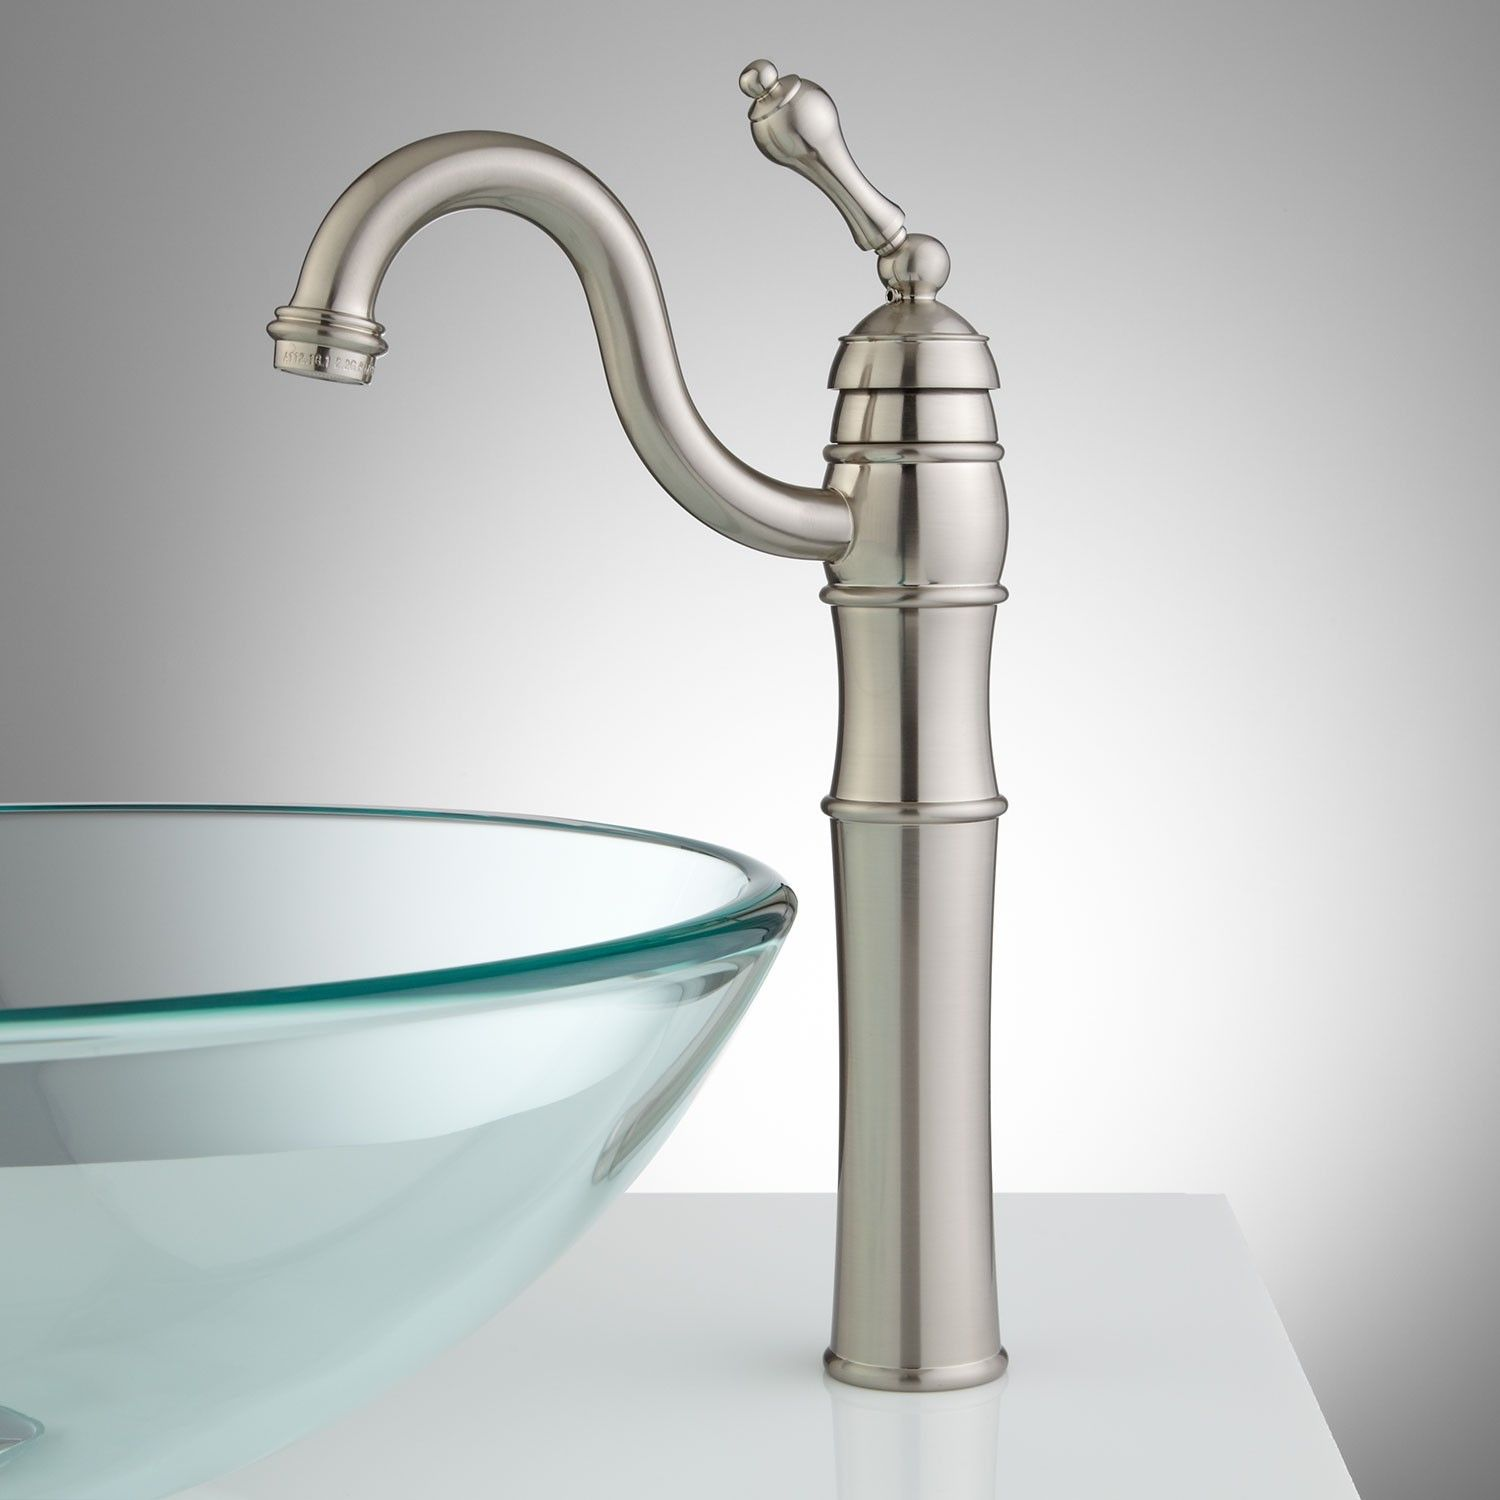 Trevena Single Hole Vessel Faucet With Swivel Spout And Pop Up